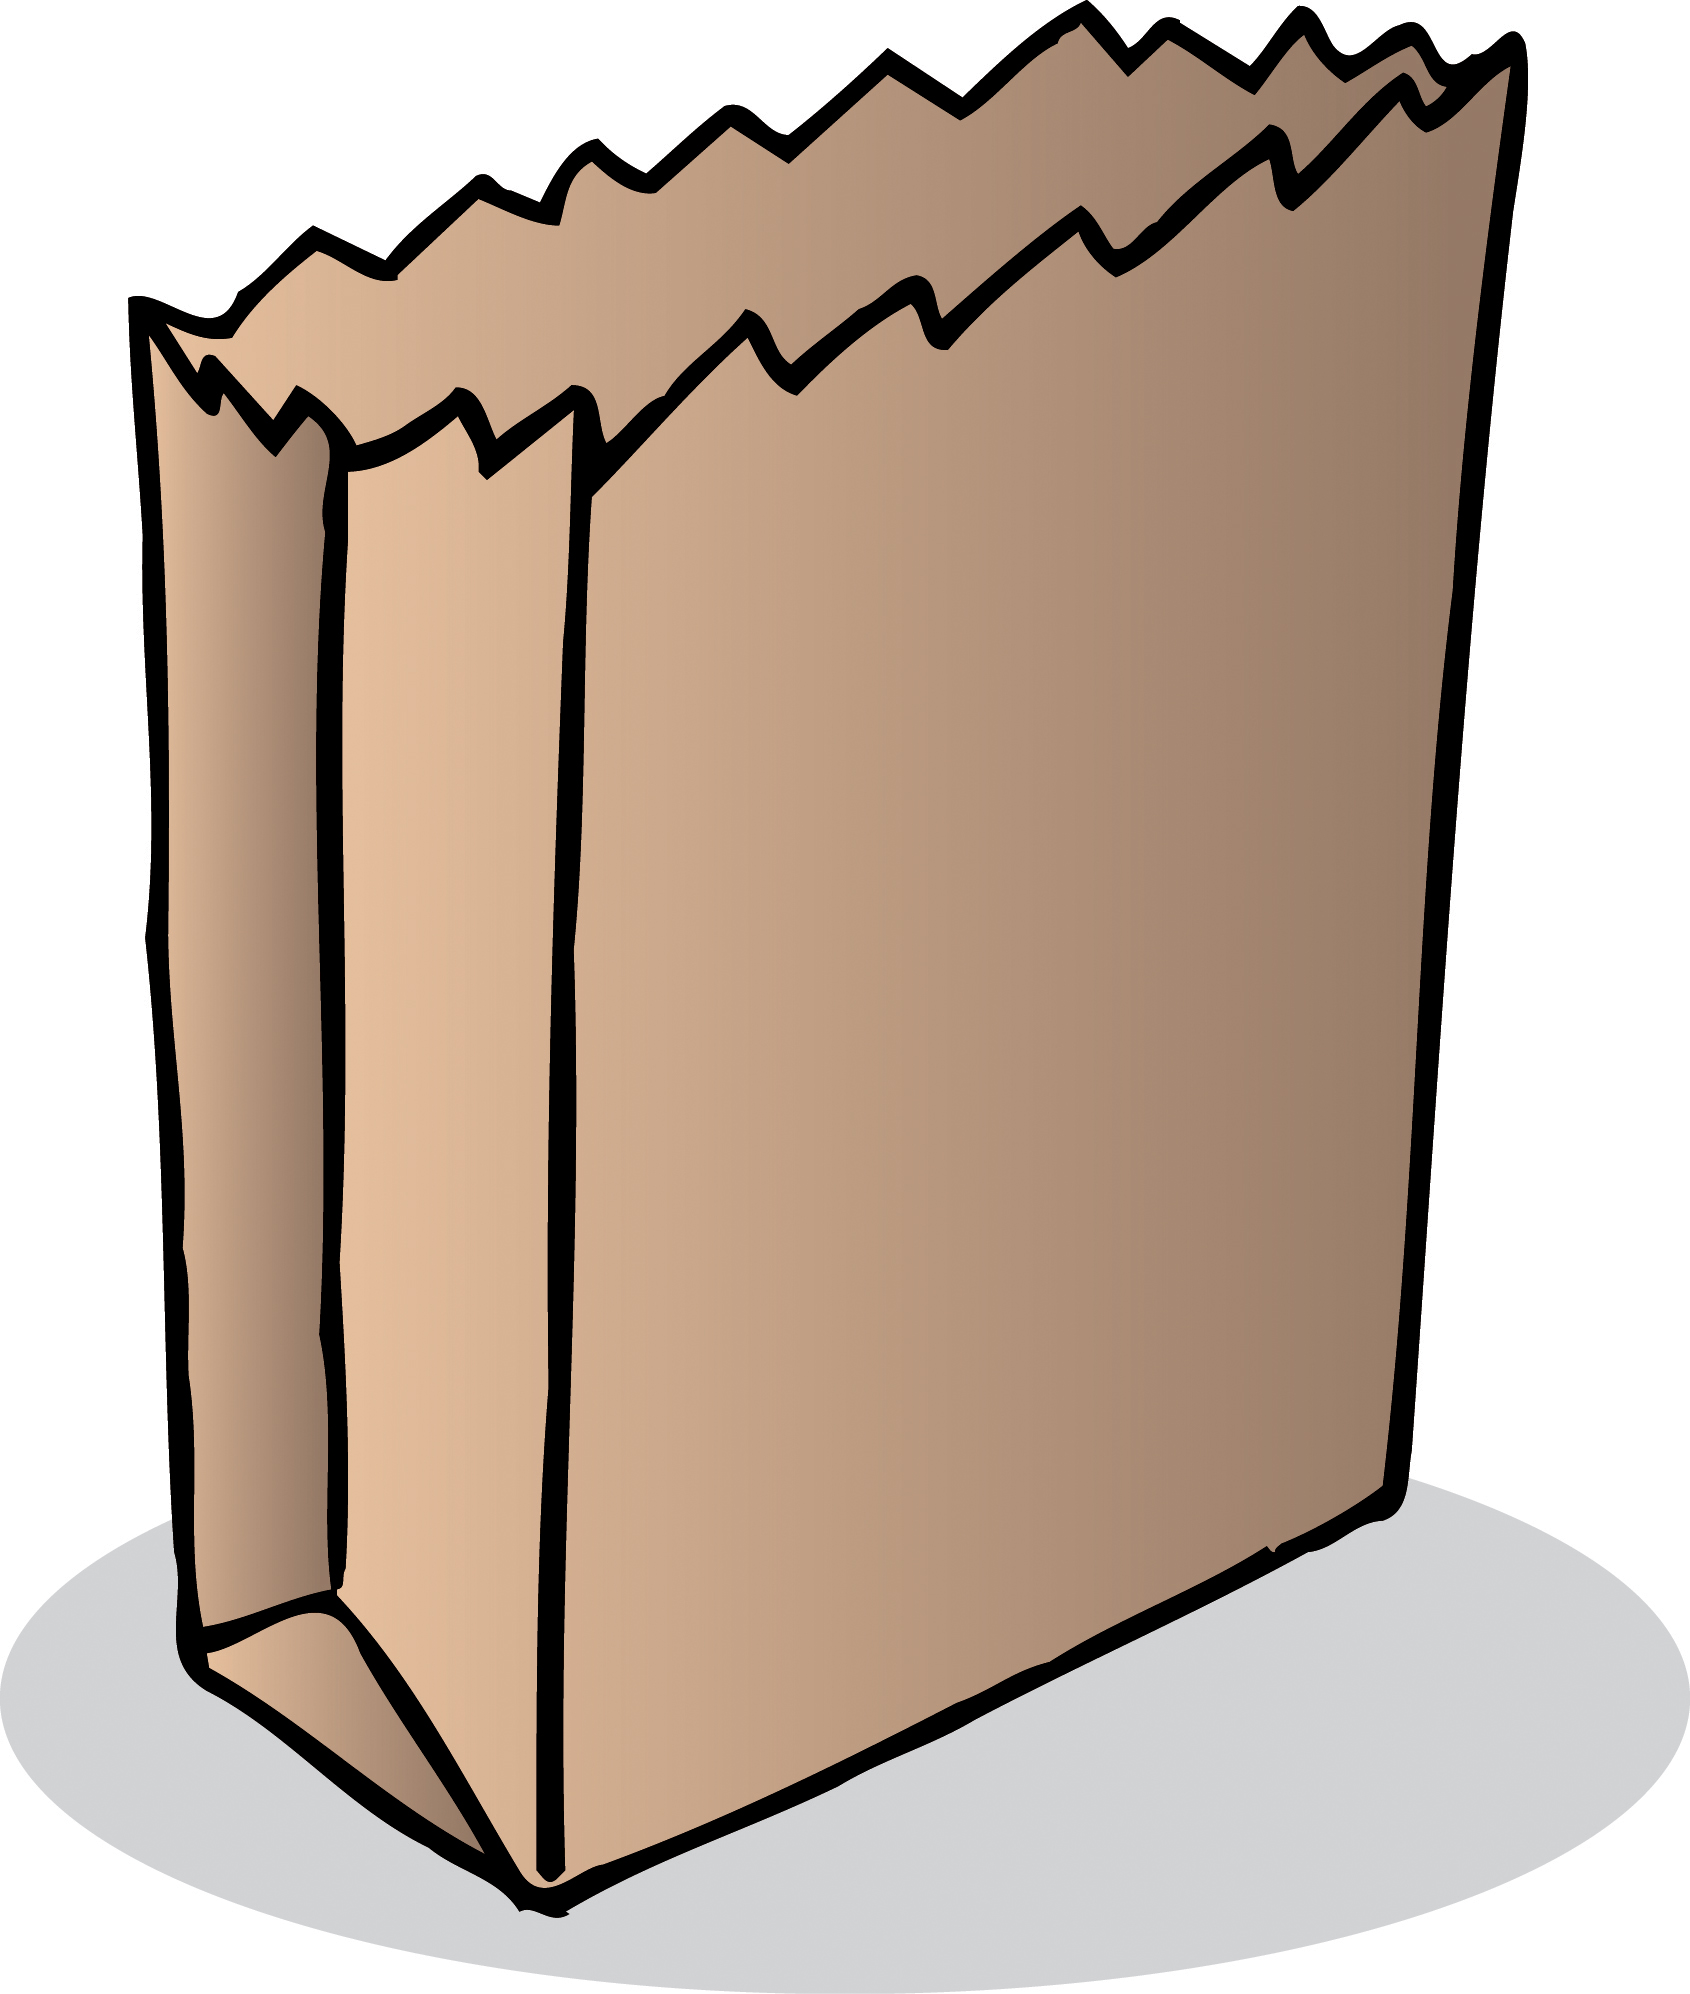 Paper bags clipart picture freeuse download Paper bags clipart clipground - Clipartable.com picture freeuse download